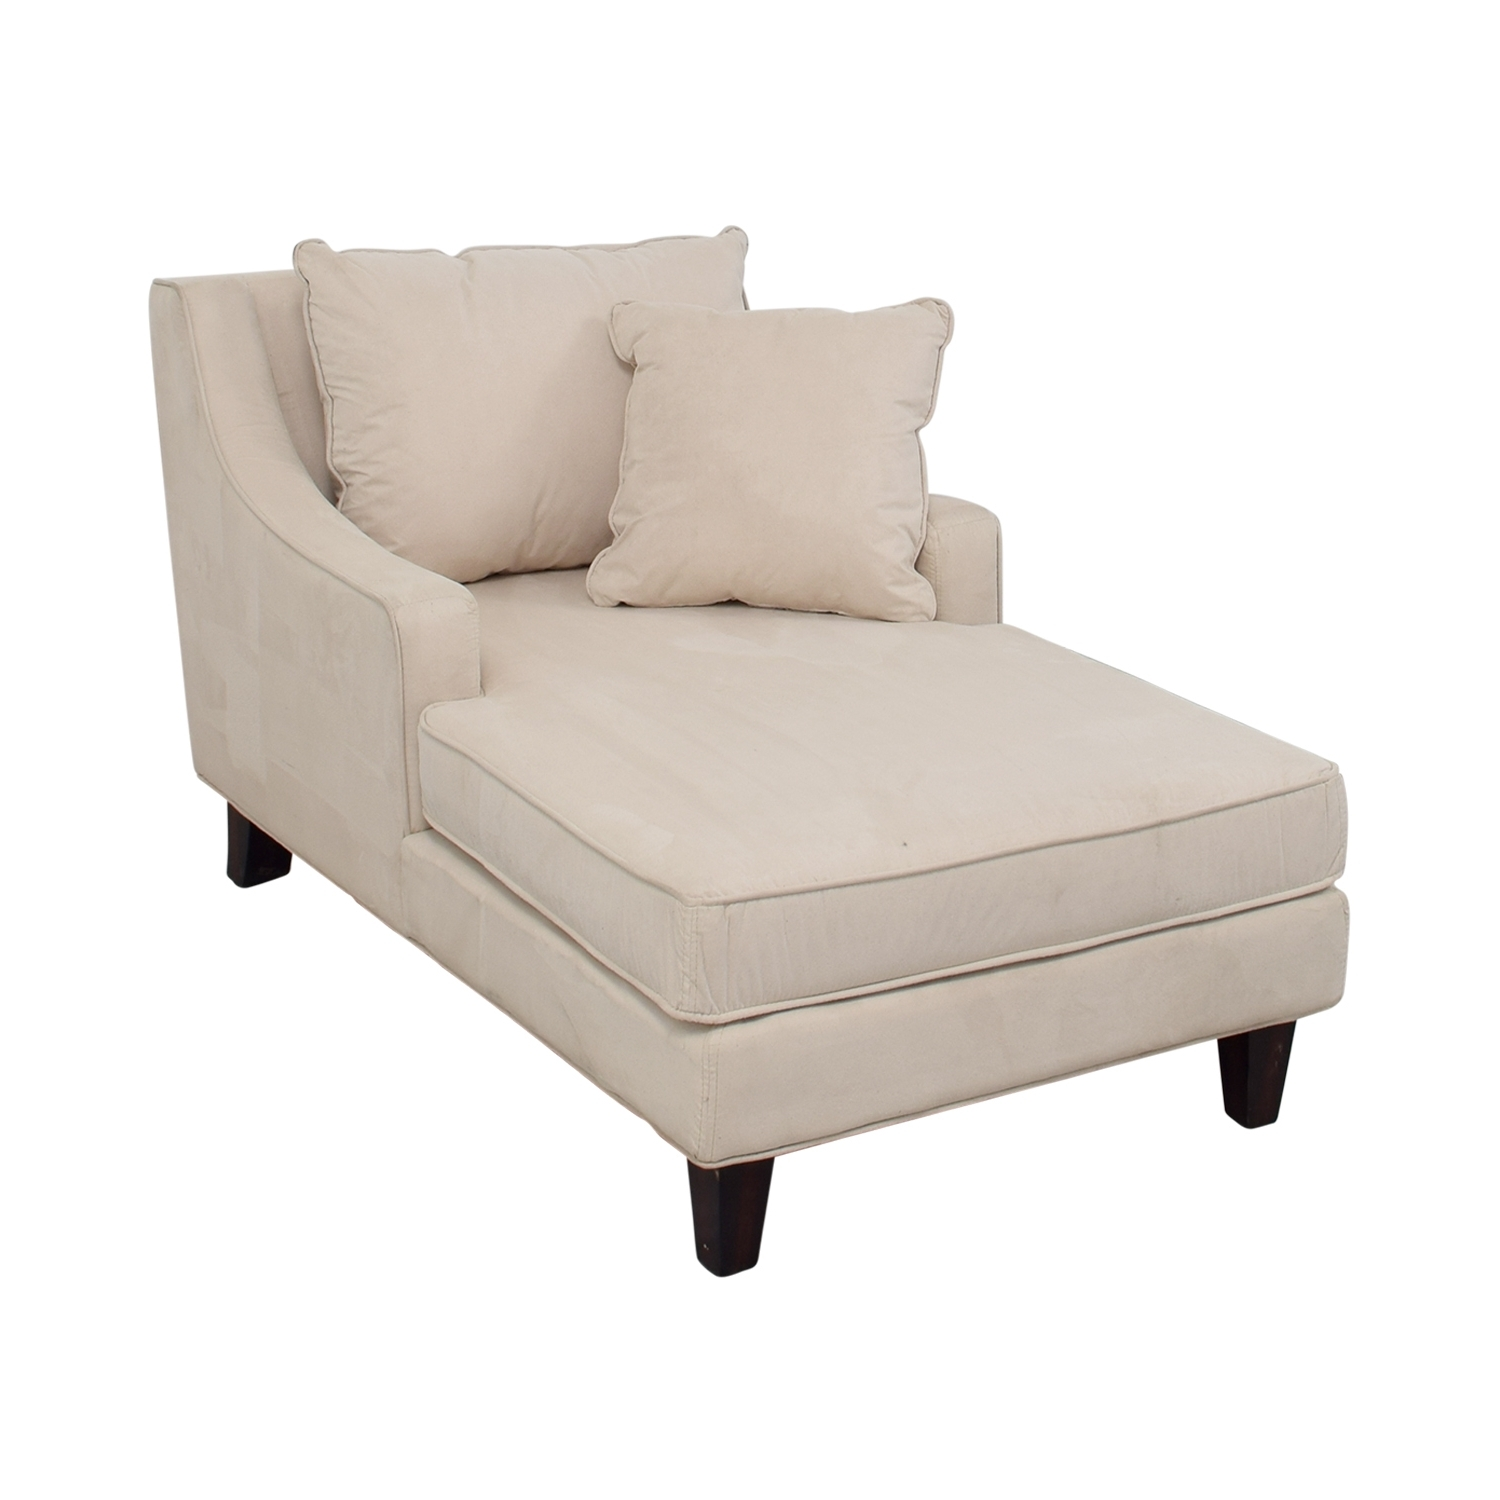 [%80% Off – Coaster Coaster Beige Microfiber Chaise Lounger / Sofas For Recent Microfiber Chaises|Microfiber Chaises For Popular 80% Off – Coaster Coaster Beige Microfiber Chaise Lounger / Sofas|Widely Used Microfiber Chaises Pertaining To 80% Off – Coaster Coaster Beige Microfiber Chaise Lounger / Sofas|Preferred 80% Off – Coaster Coaster Beige Microfiber Chaise Lounger / Sofas In Microfiber Chaises%] (View 5 of 15)